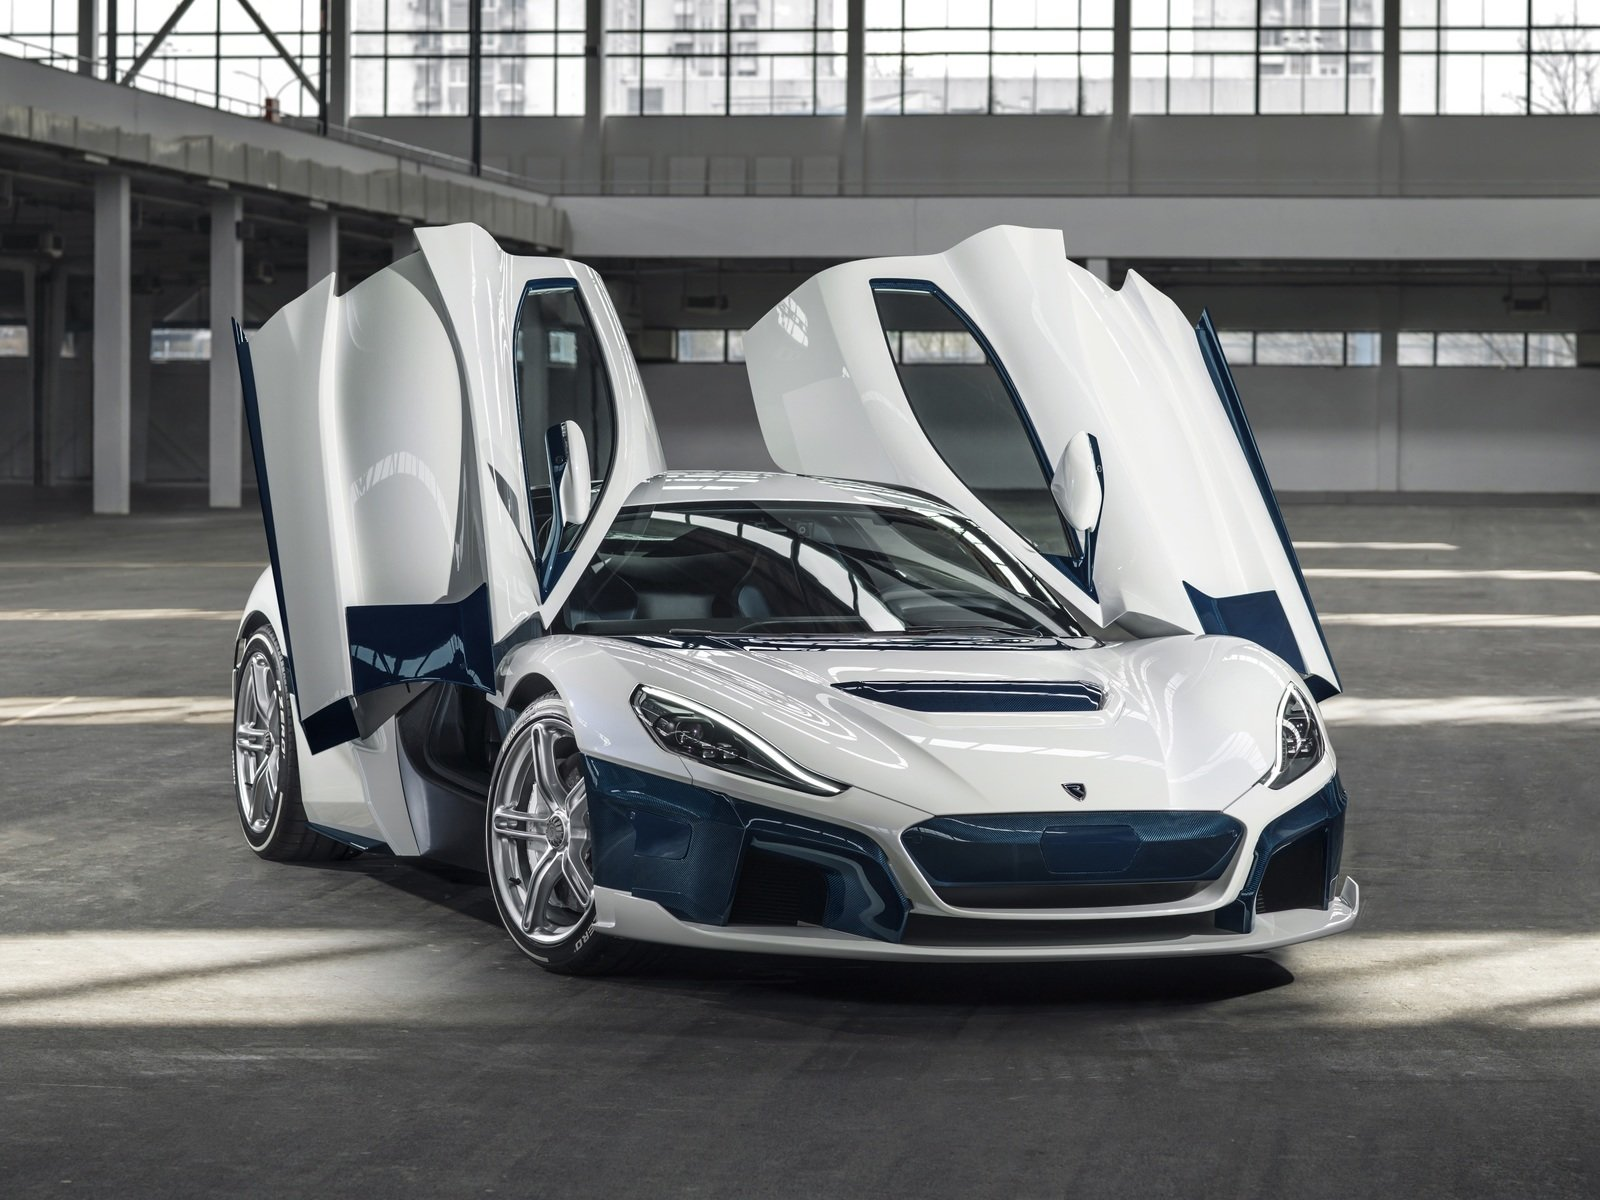 The Rimac C Two Shows Off New Livery At The 2019 Geneva